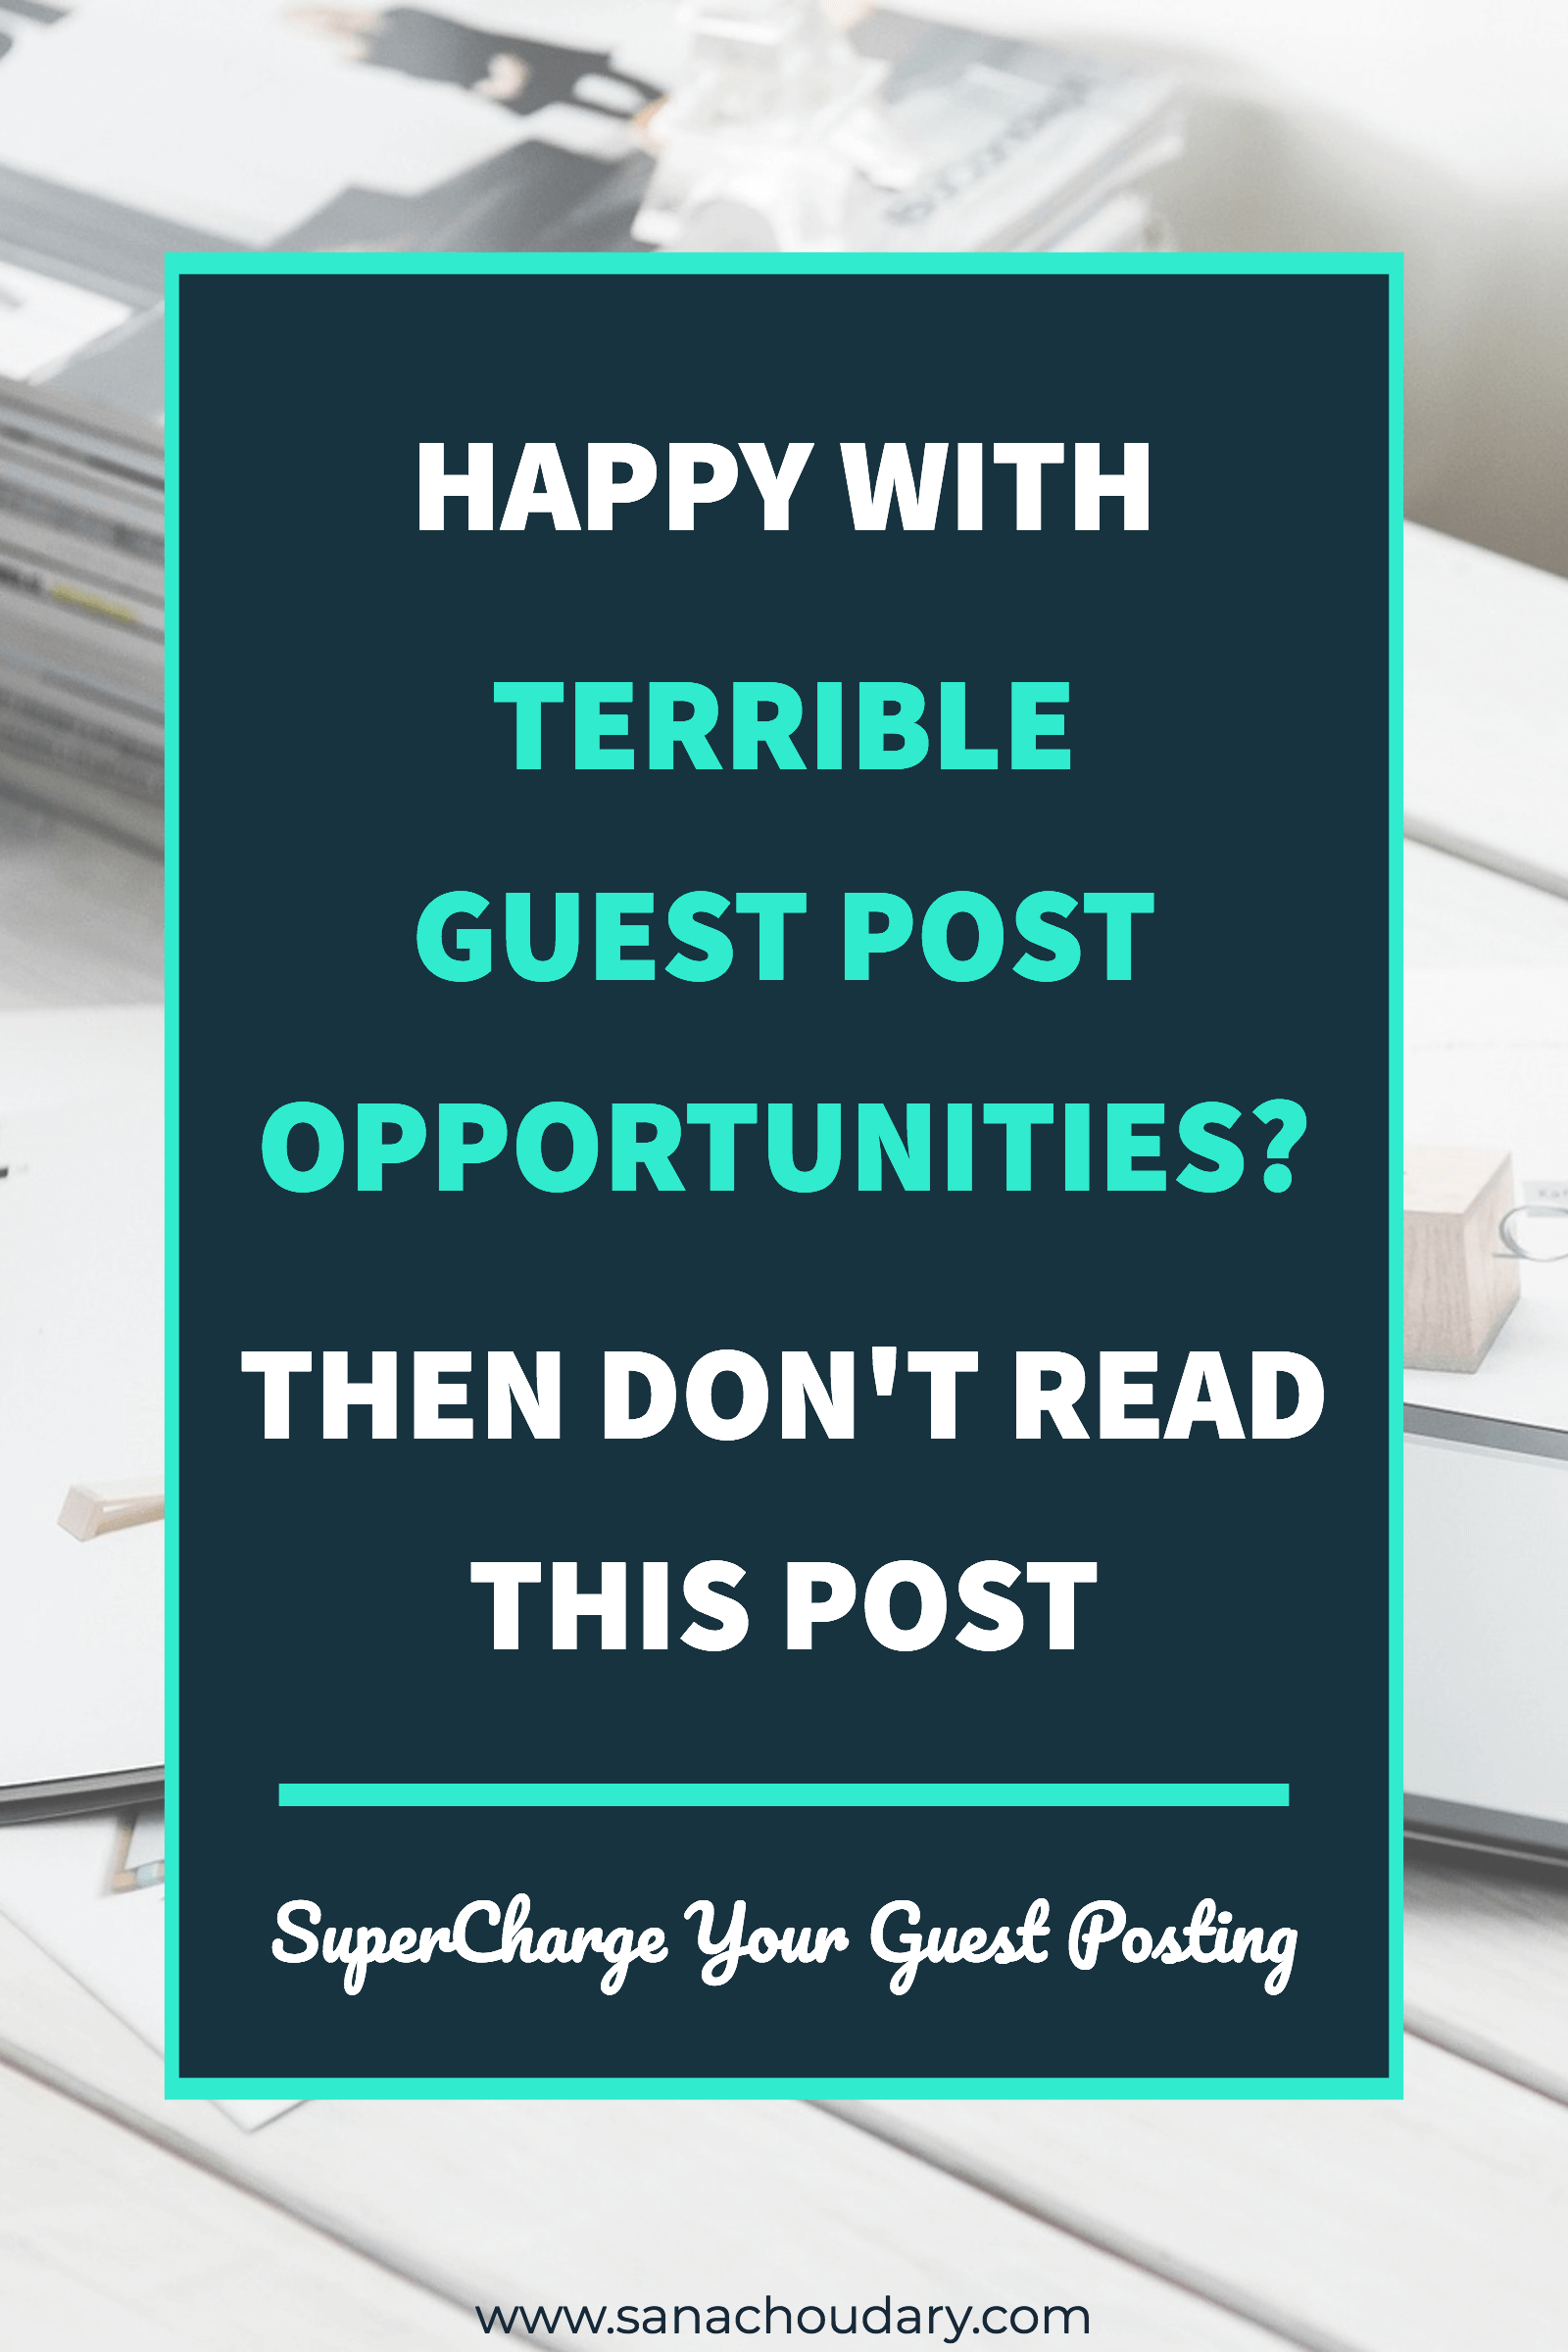 Happy with terrible guest posting opportunities? Then don't